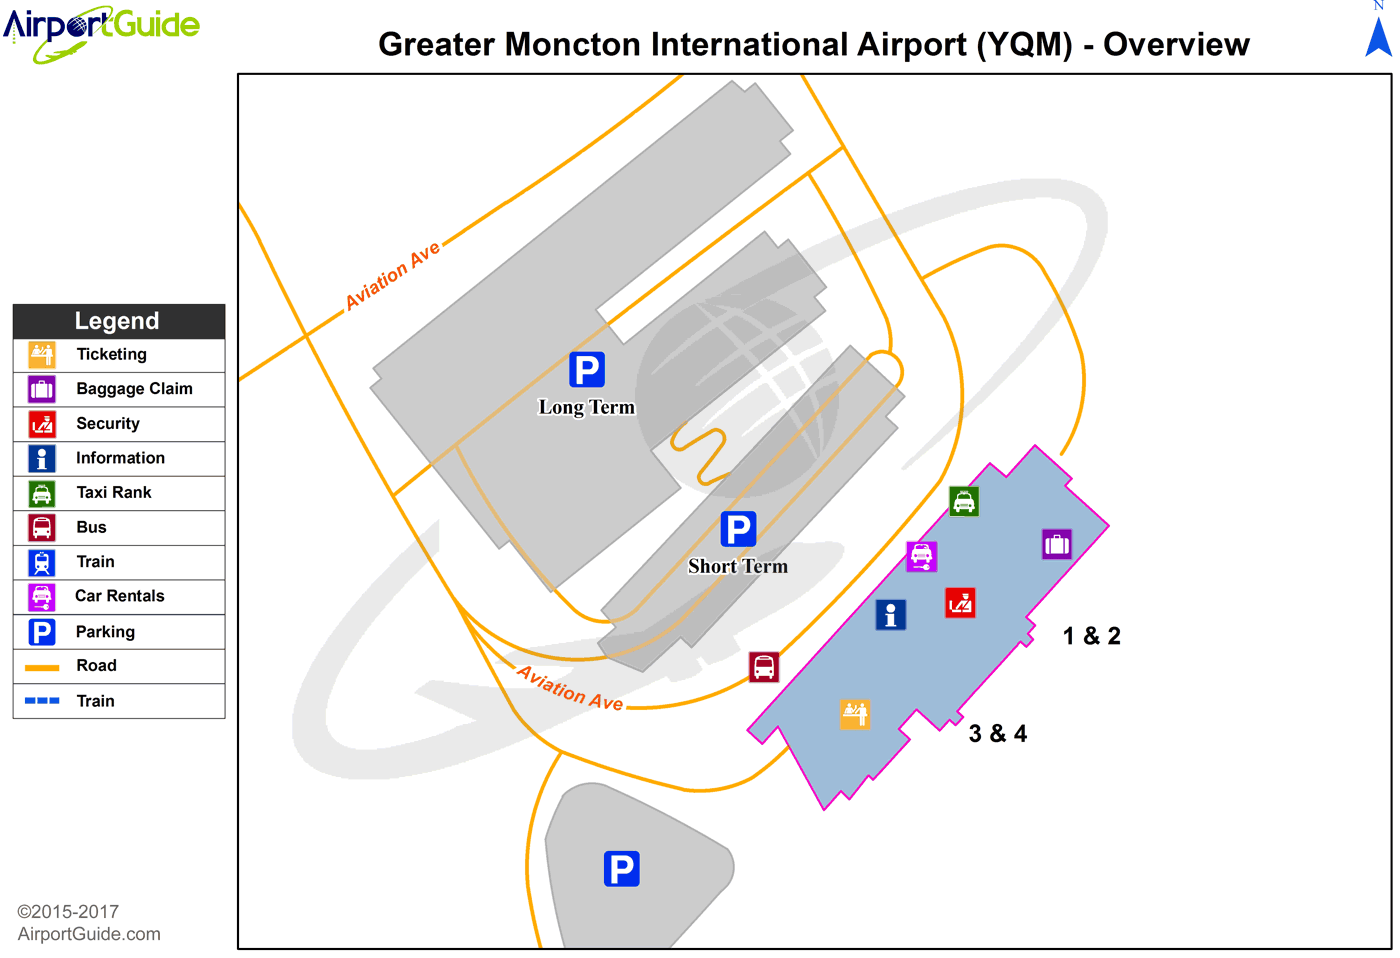 google map directions to with Greater Moncton International Yqm Airport Terminal Map on Facilities Location further Location as well Directions Map moreover Greater Moncton International YQM Airport Terminal Map as well Maps.